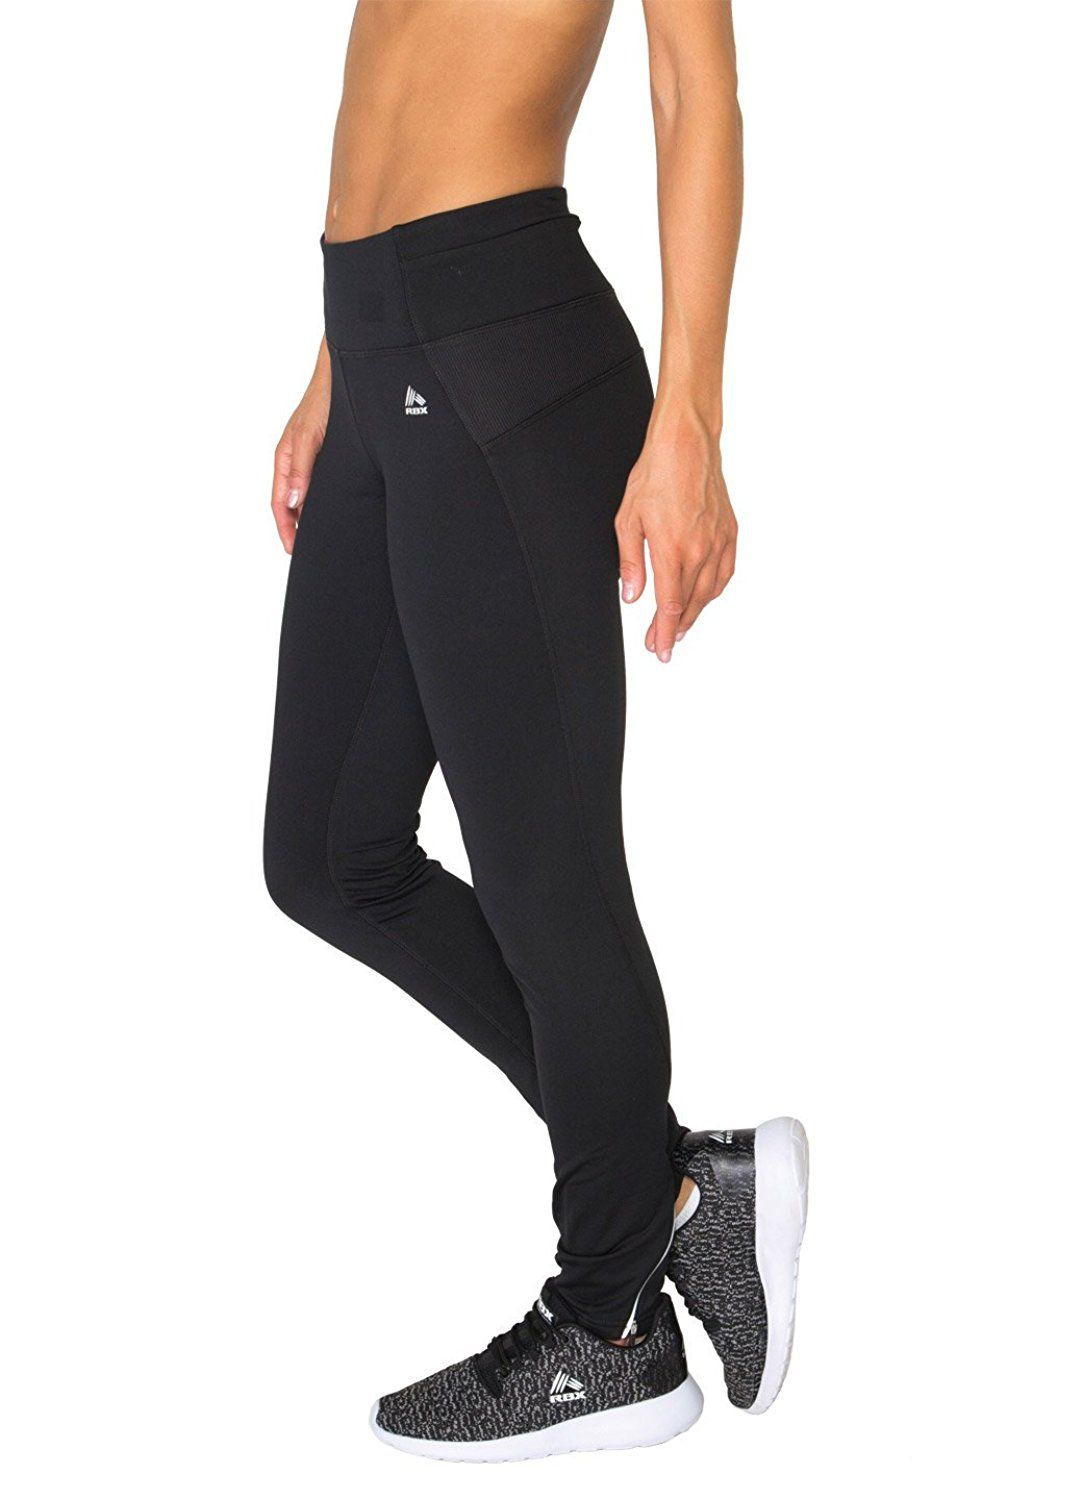 c4150a8fb0 RBX Active Women's Fleece Arctic Barrier Athletic Tights * This is an  Amazon Affiliate link. Find out more about the great product at the image  link.